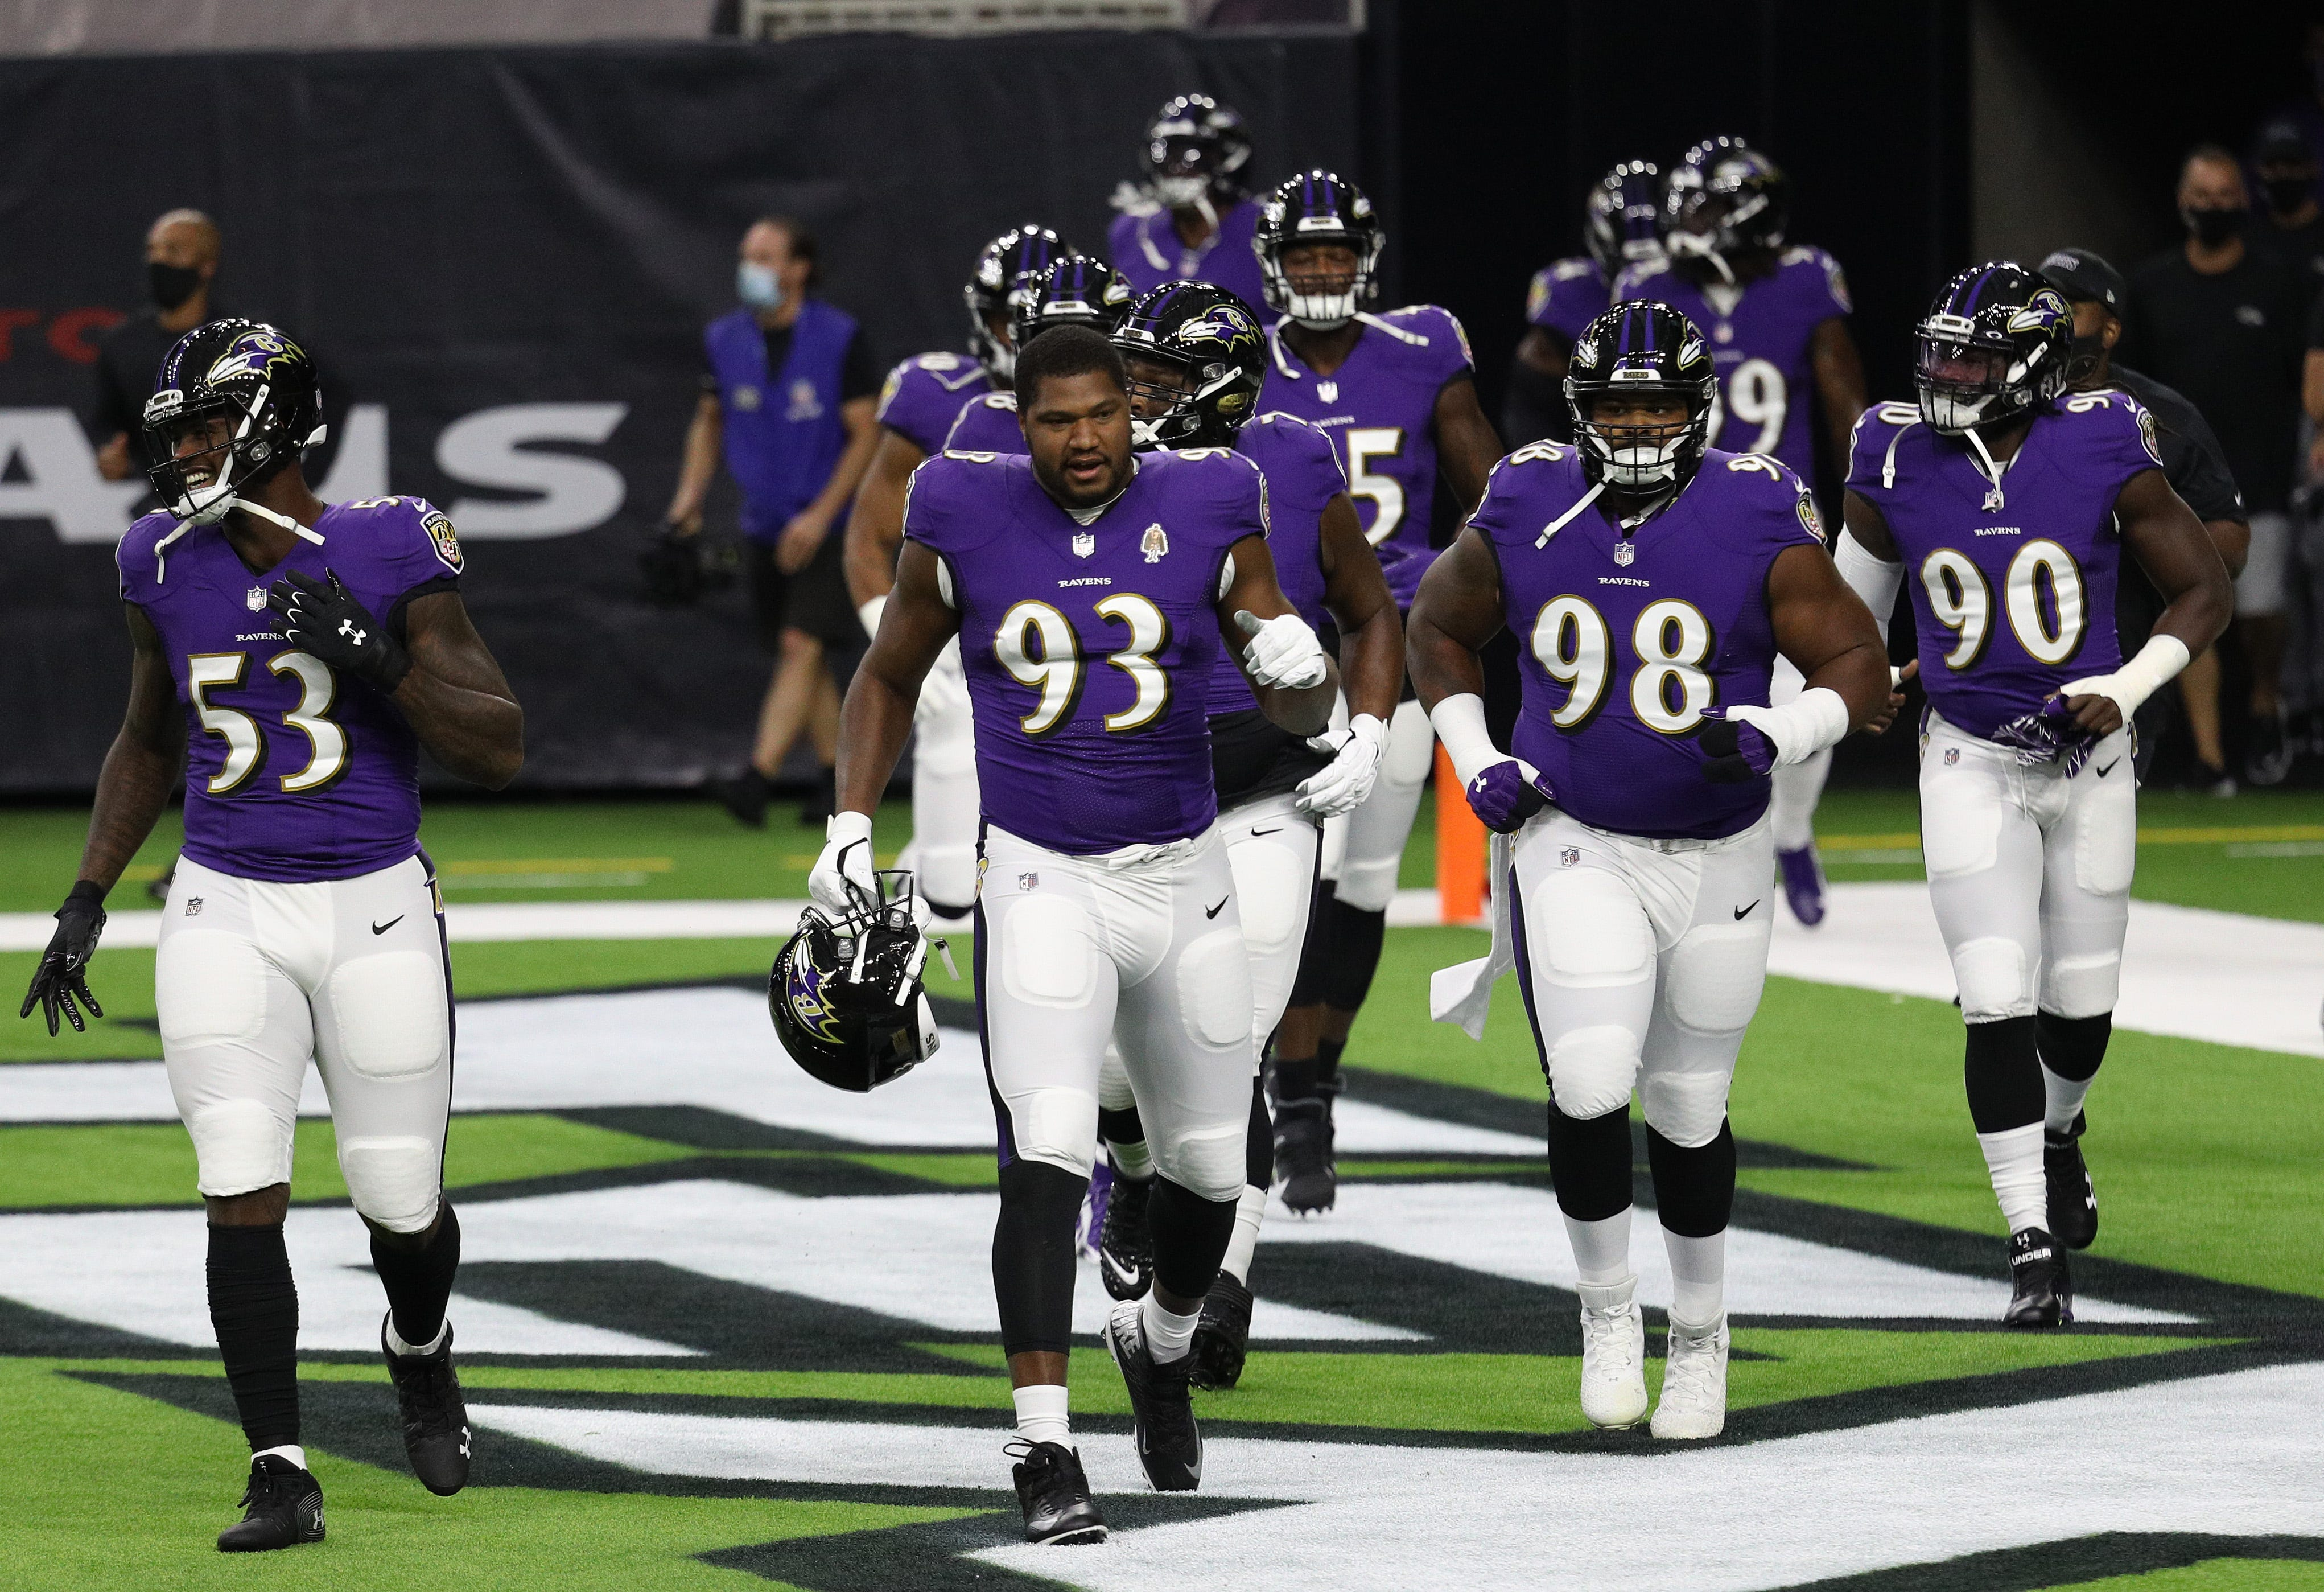 NFL postpones Ravens-Steelers game for third time, with matchup now set for Wednesday